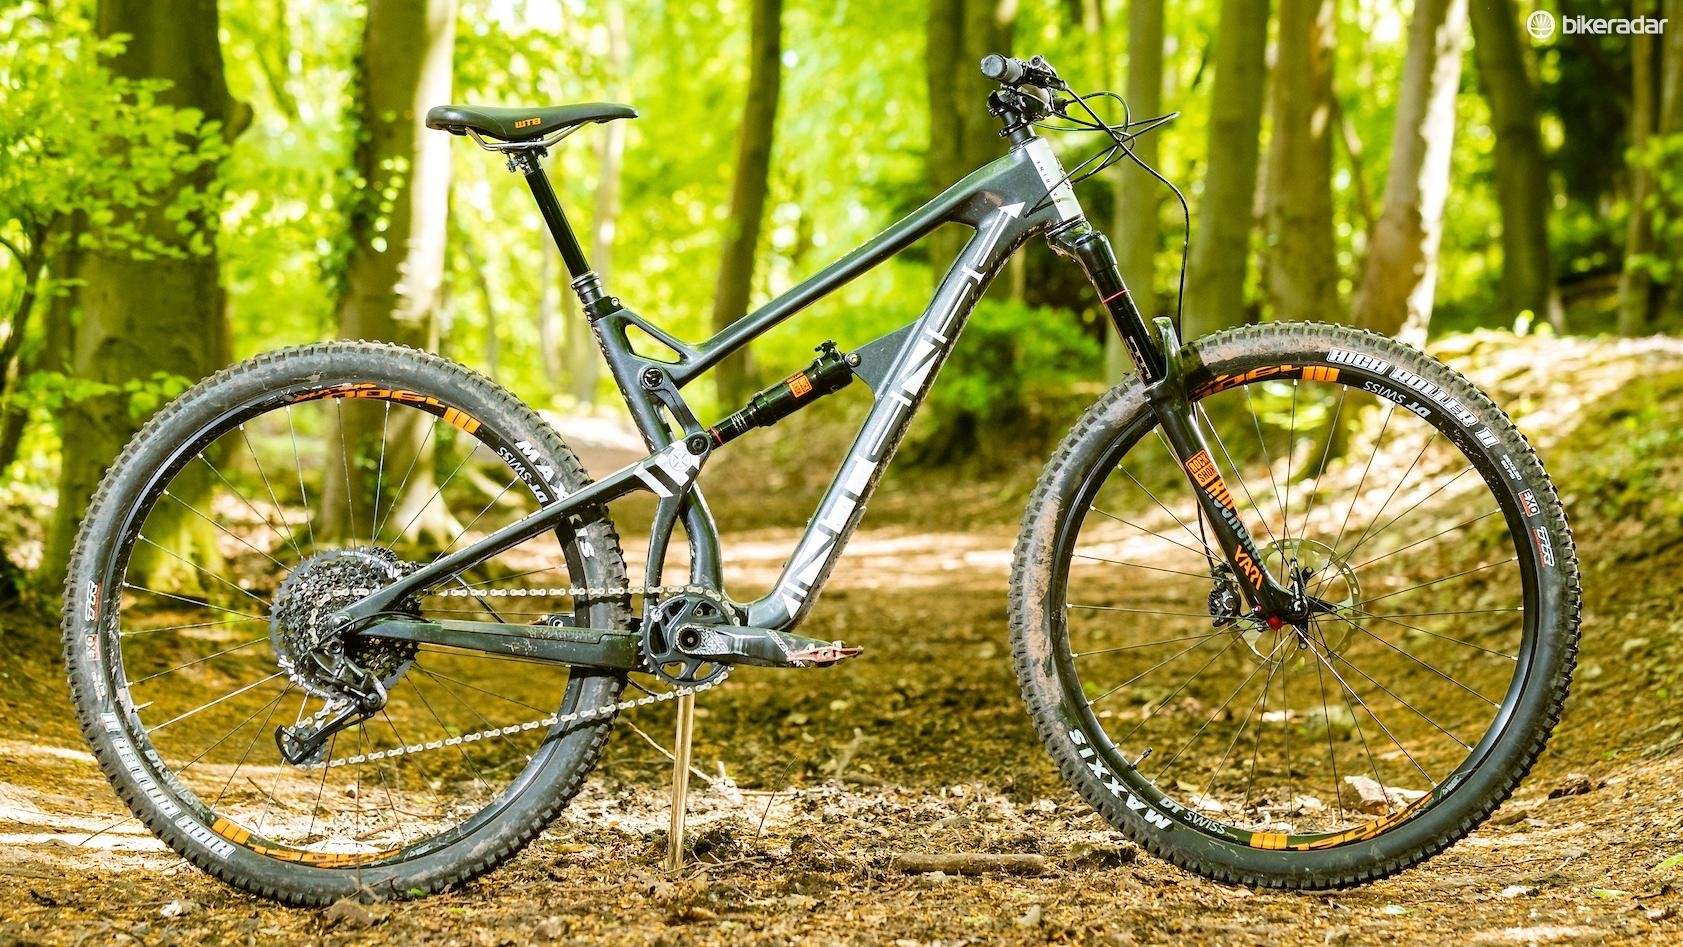 The Intense Carbine is its long travel 29er enduro bike